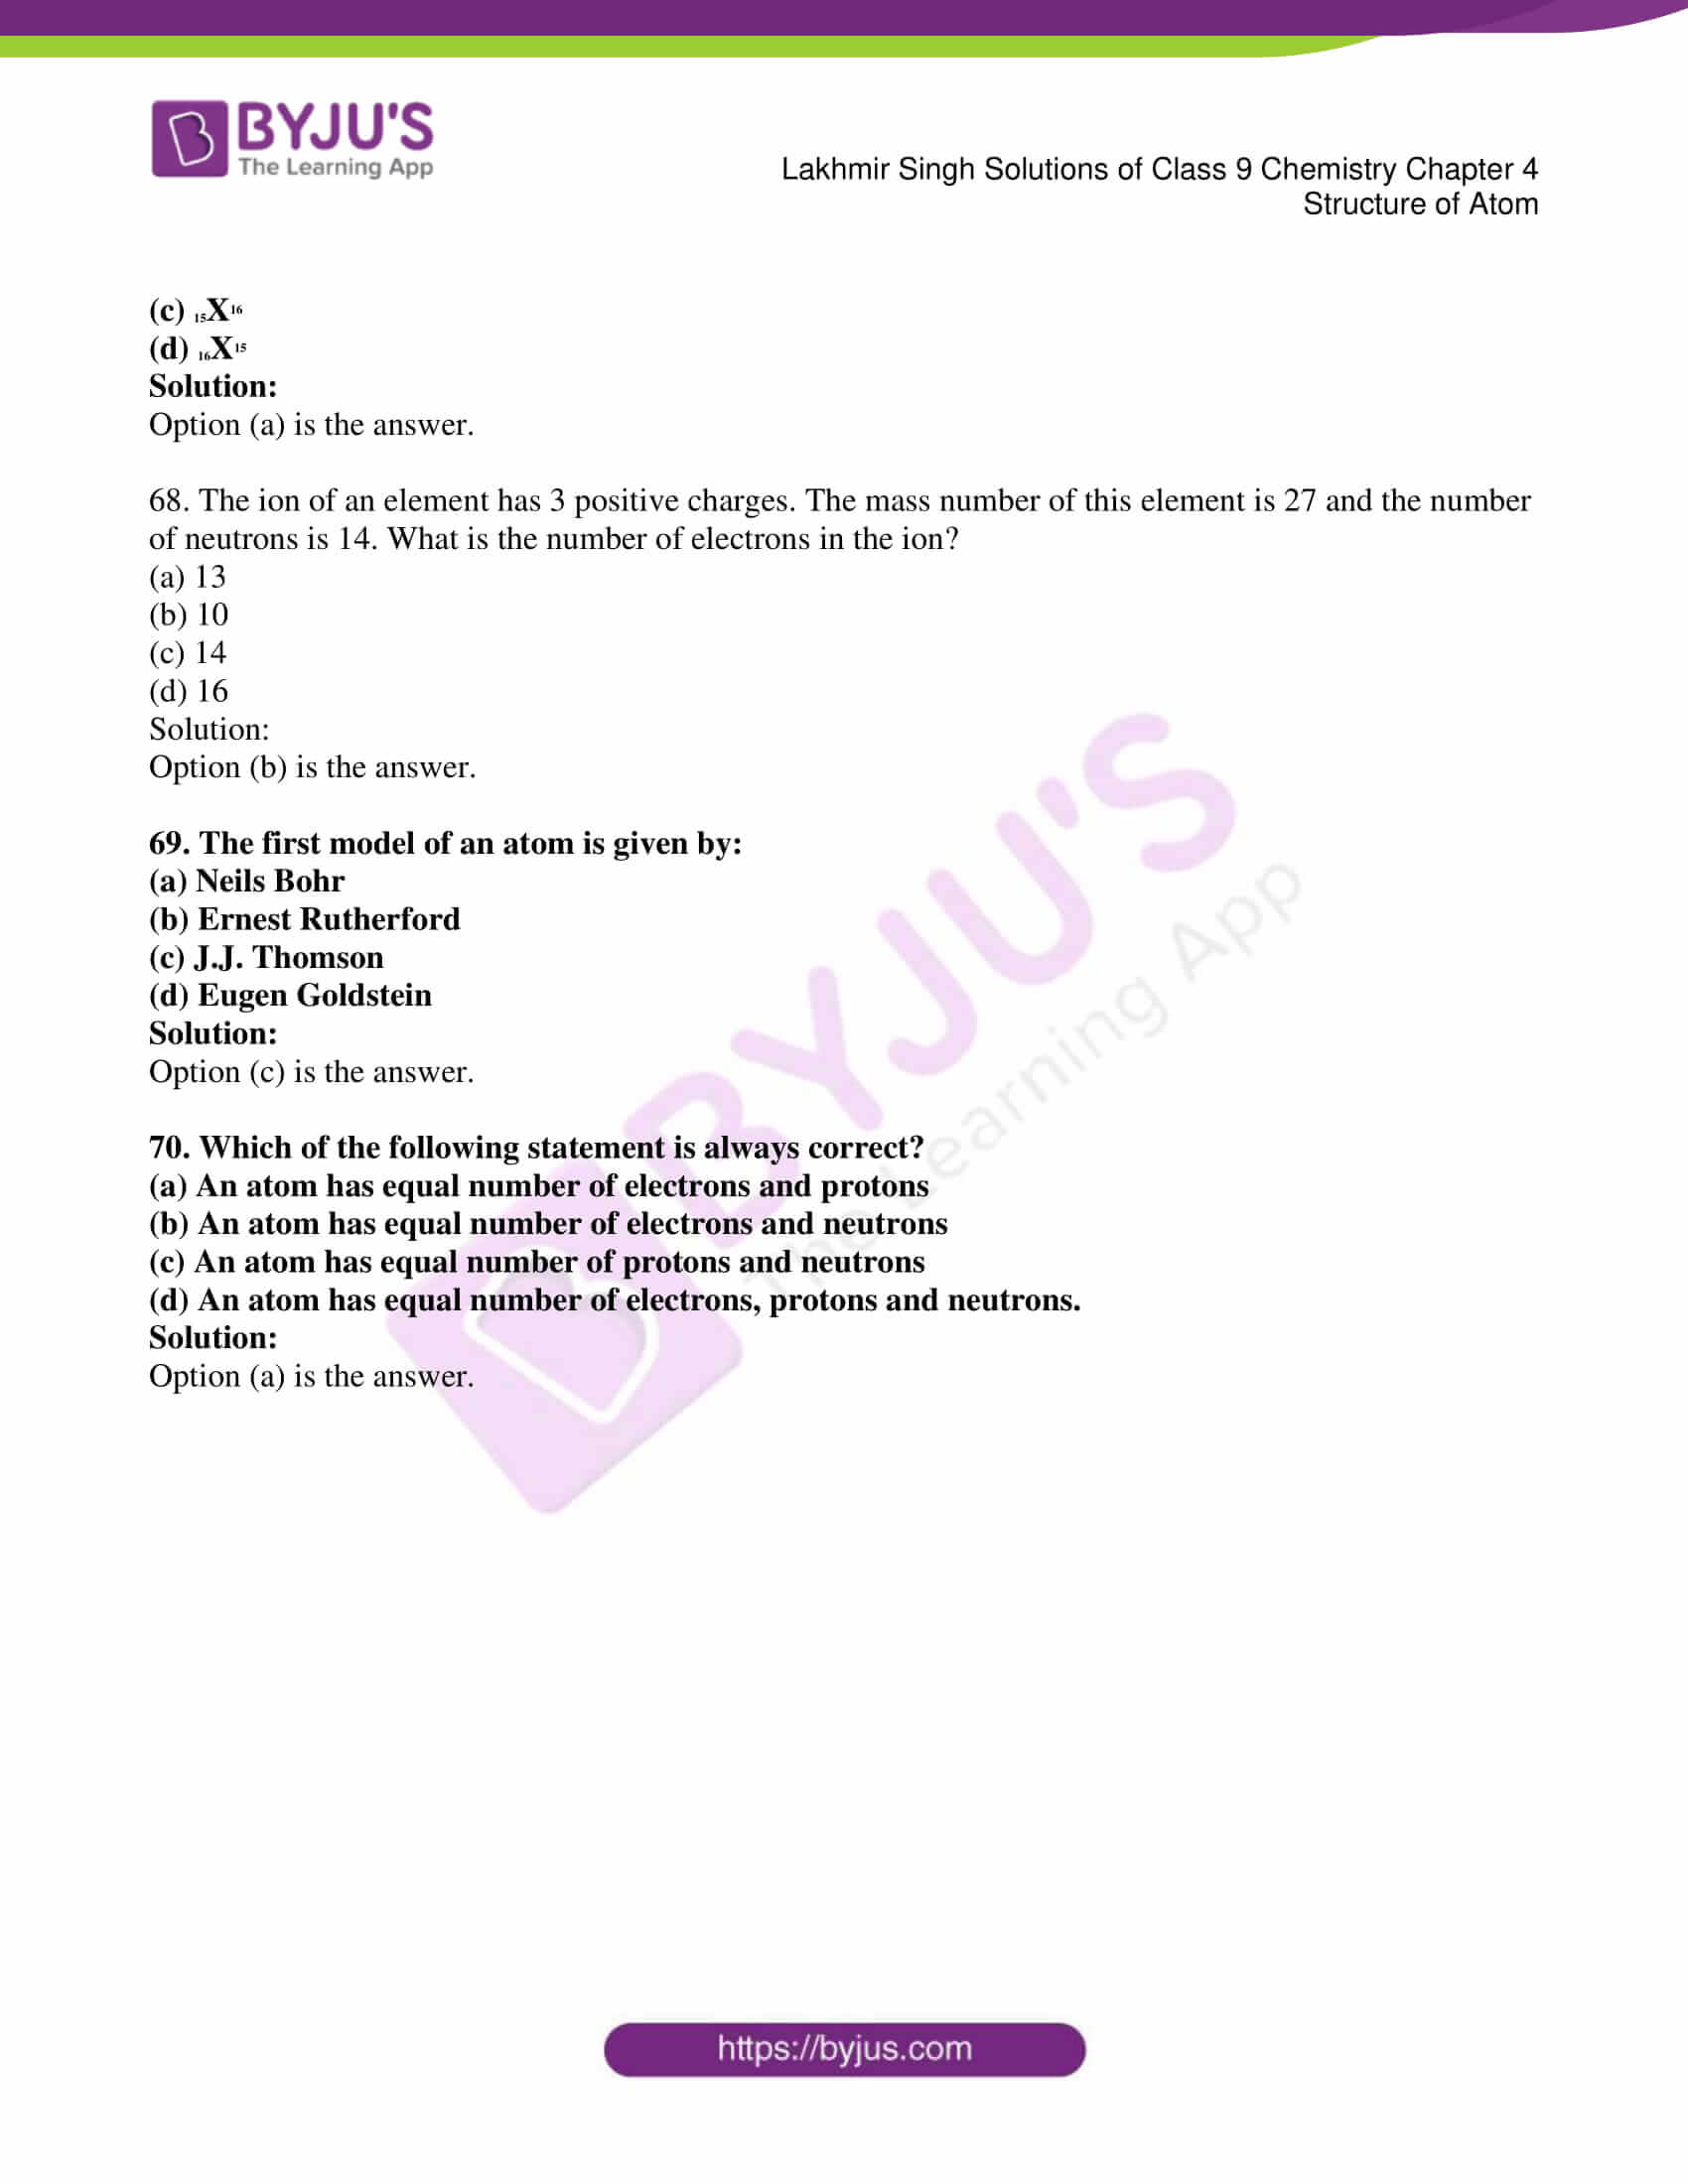 Lakhmir Singh Chemistry Class 9 Solutions For Chapter 4